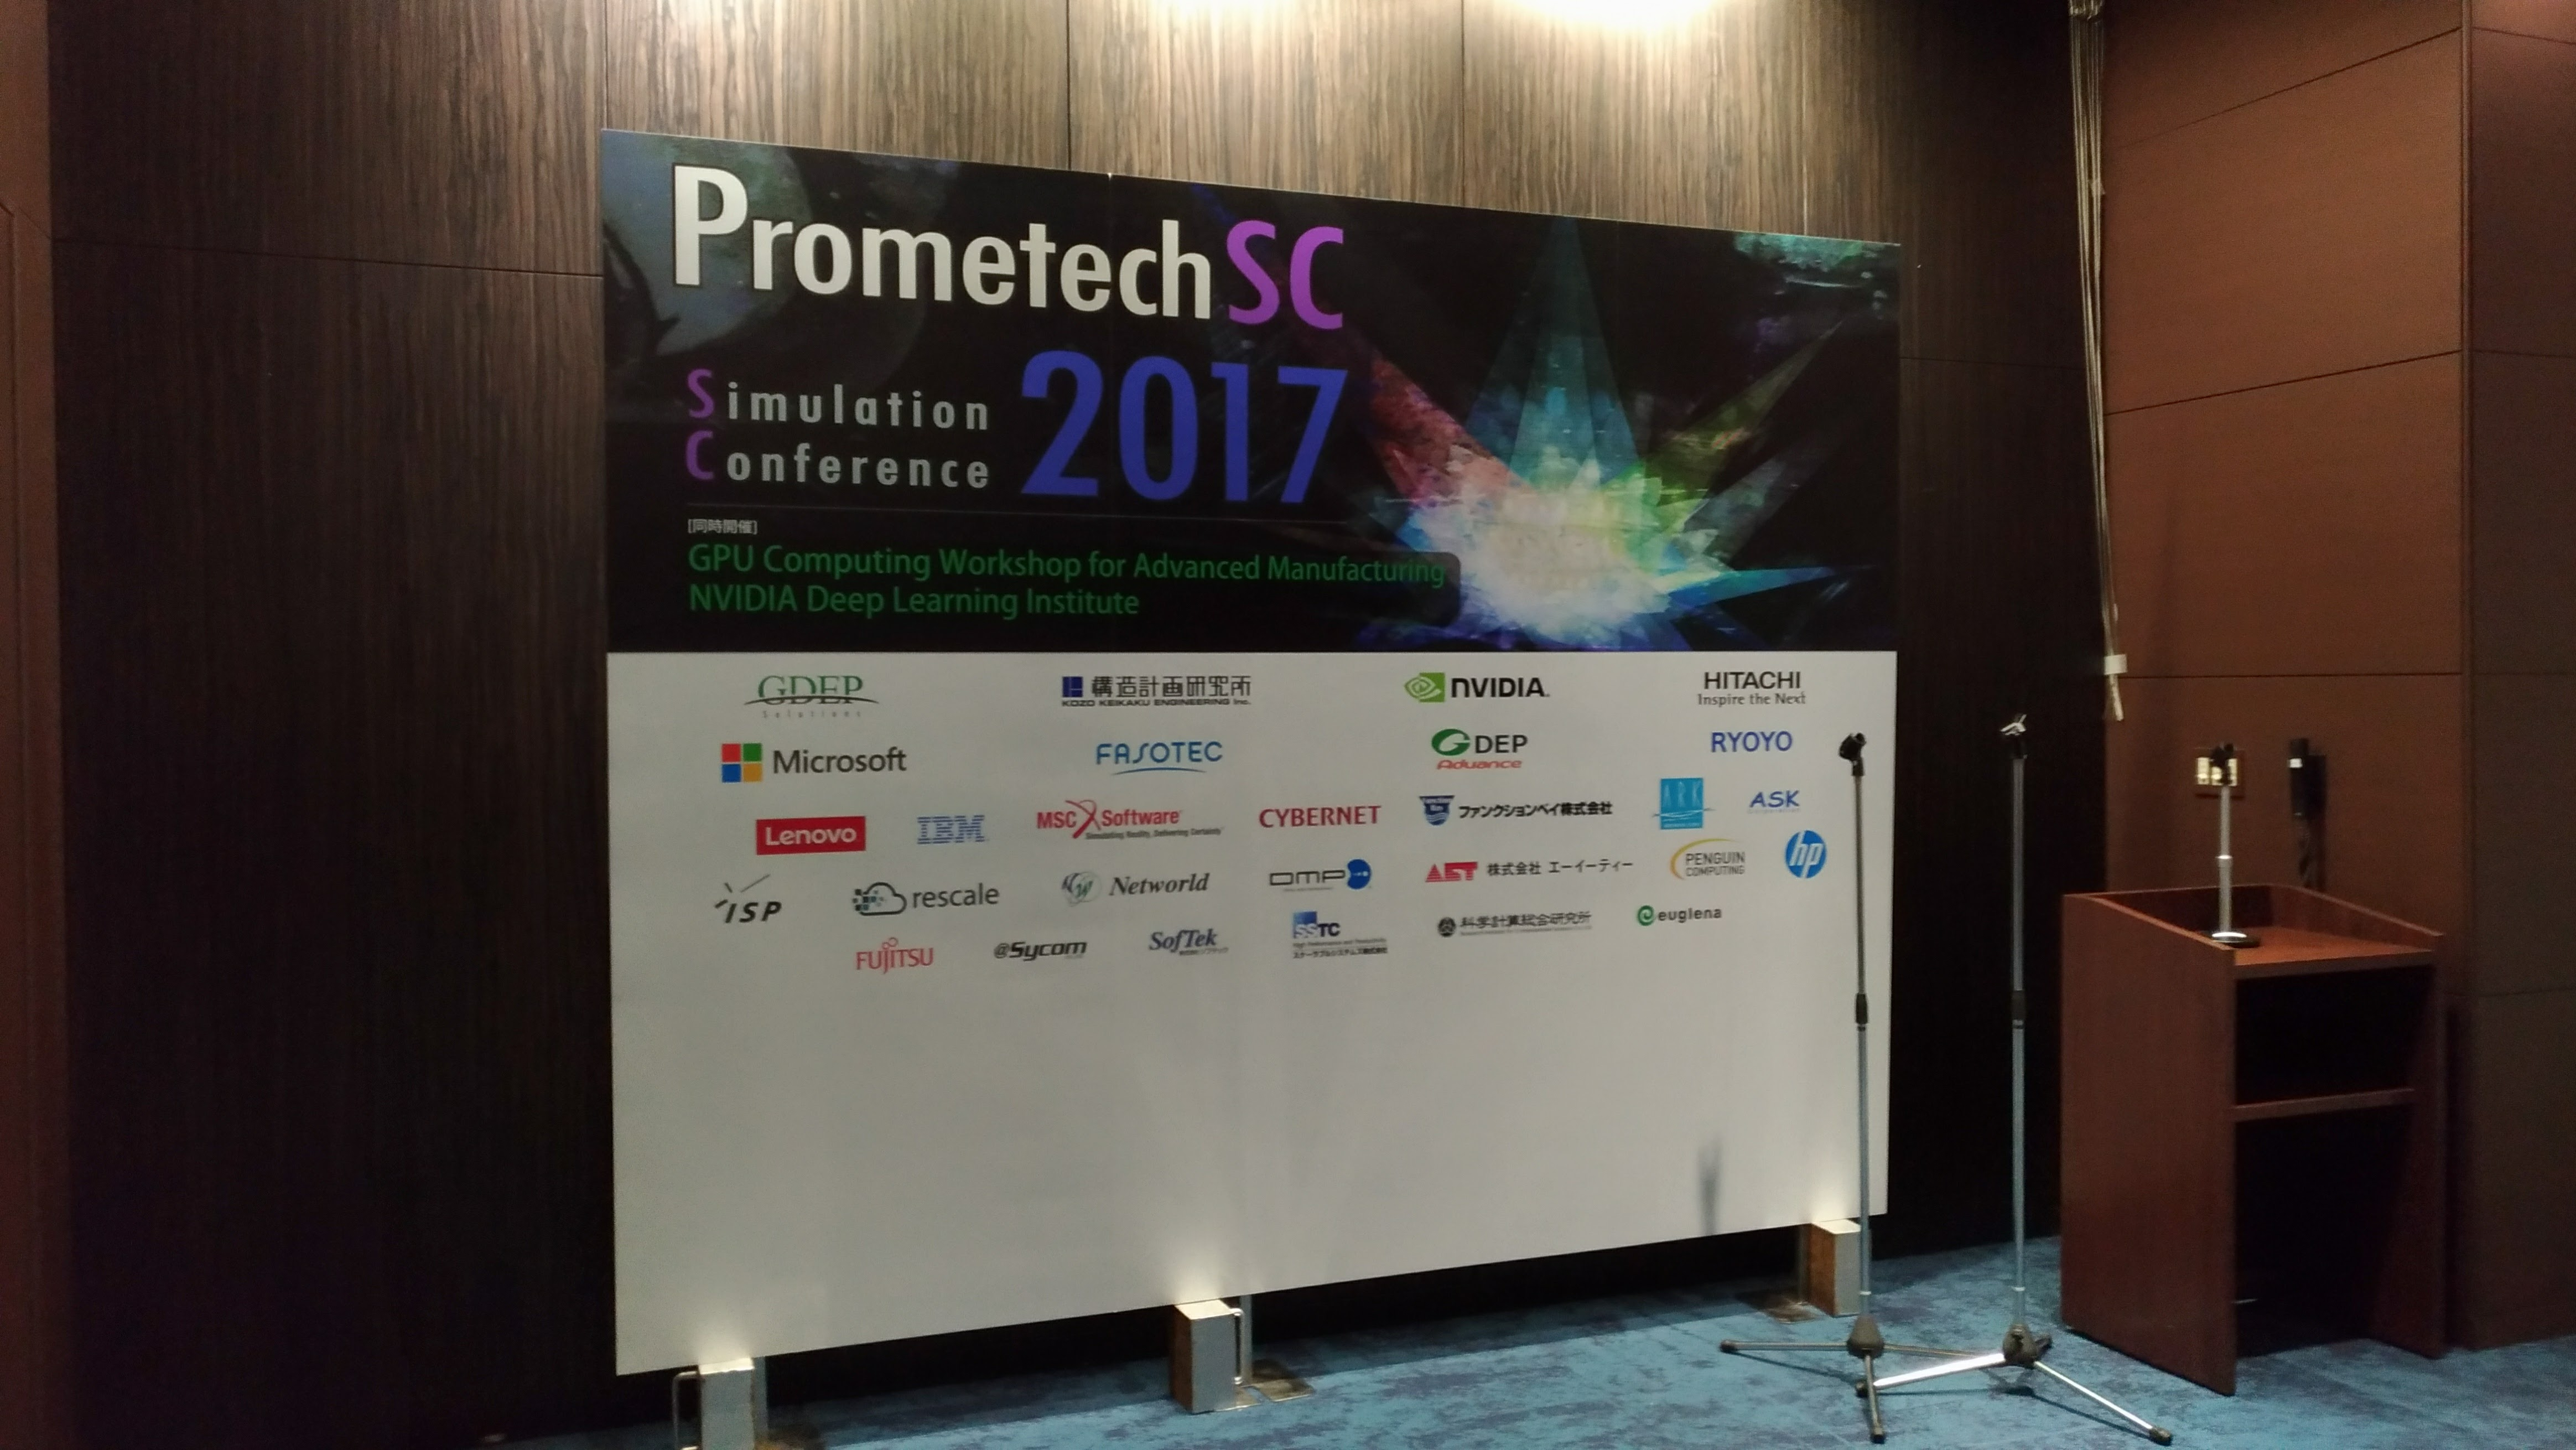 Prometech Simulation Conference 2017 に行ってきました